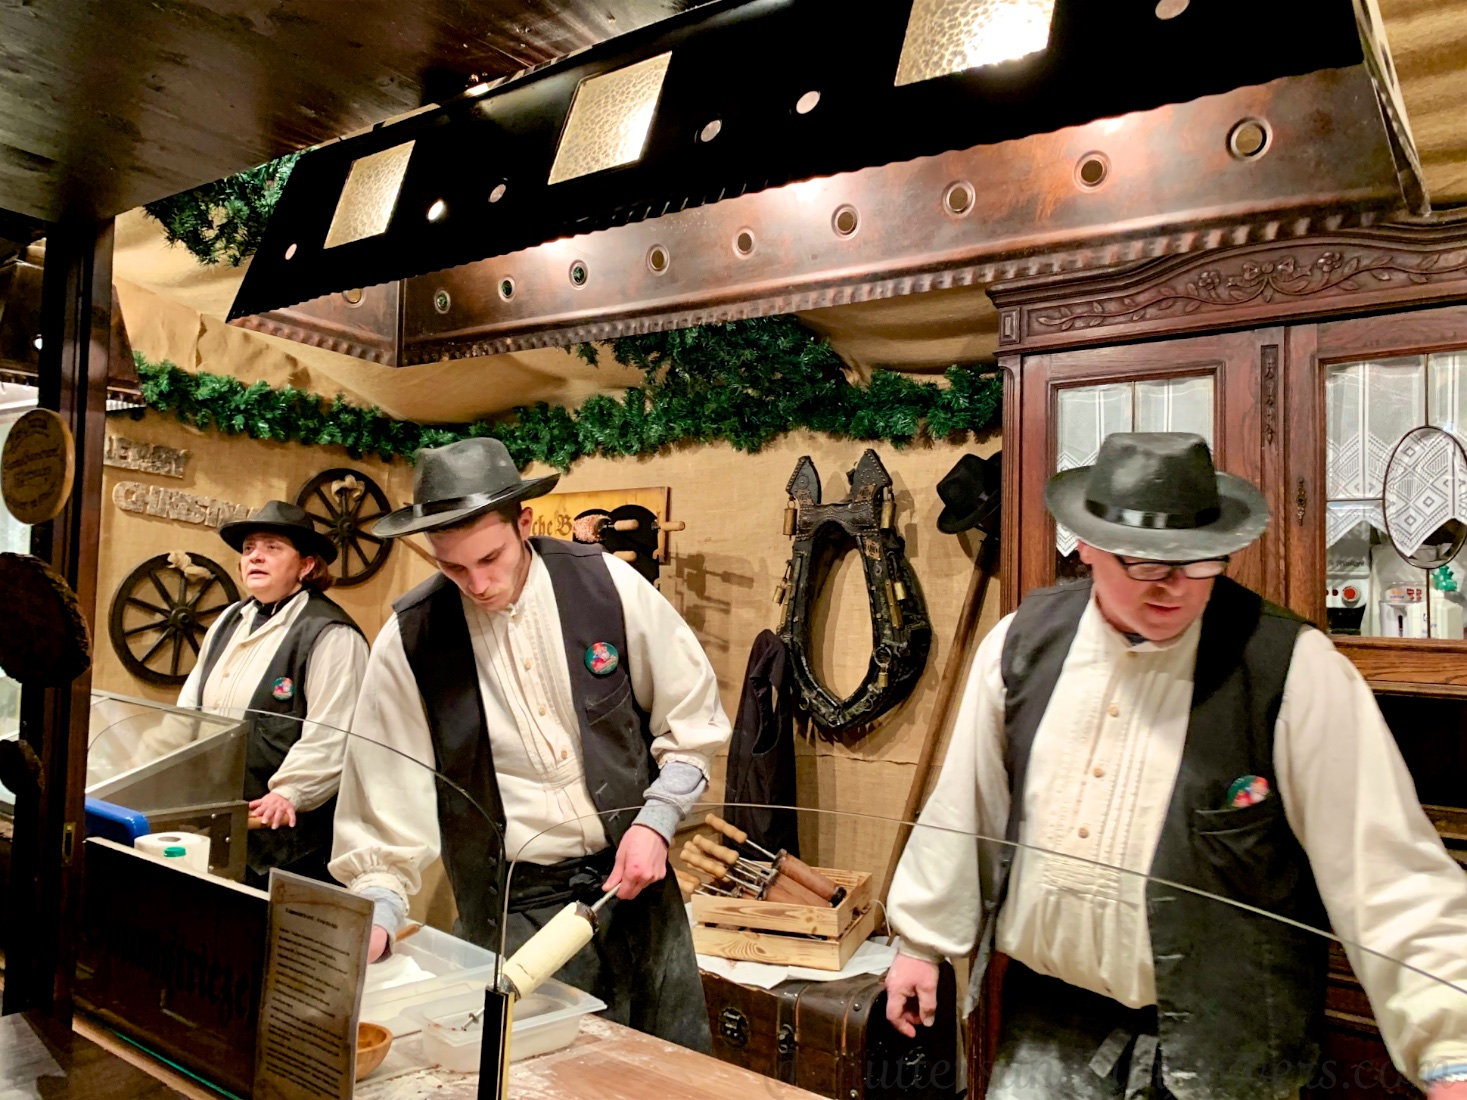 Strudel bakers dressed in traditional dress at the Cologne Christmas market